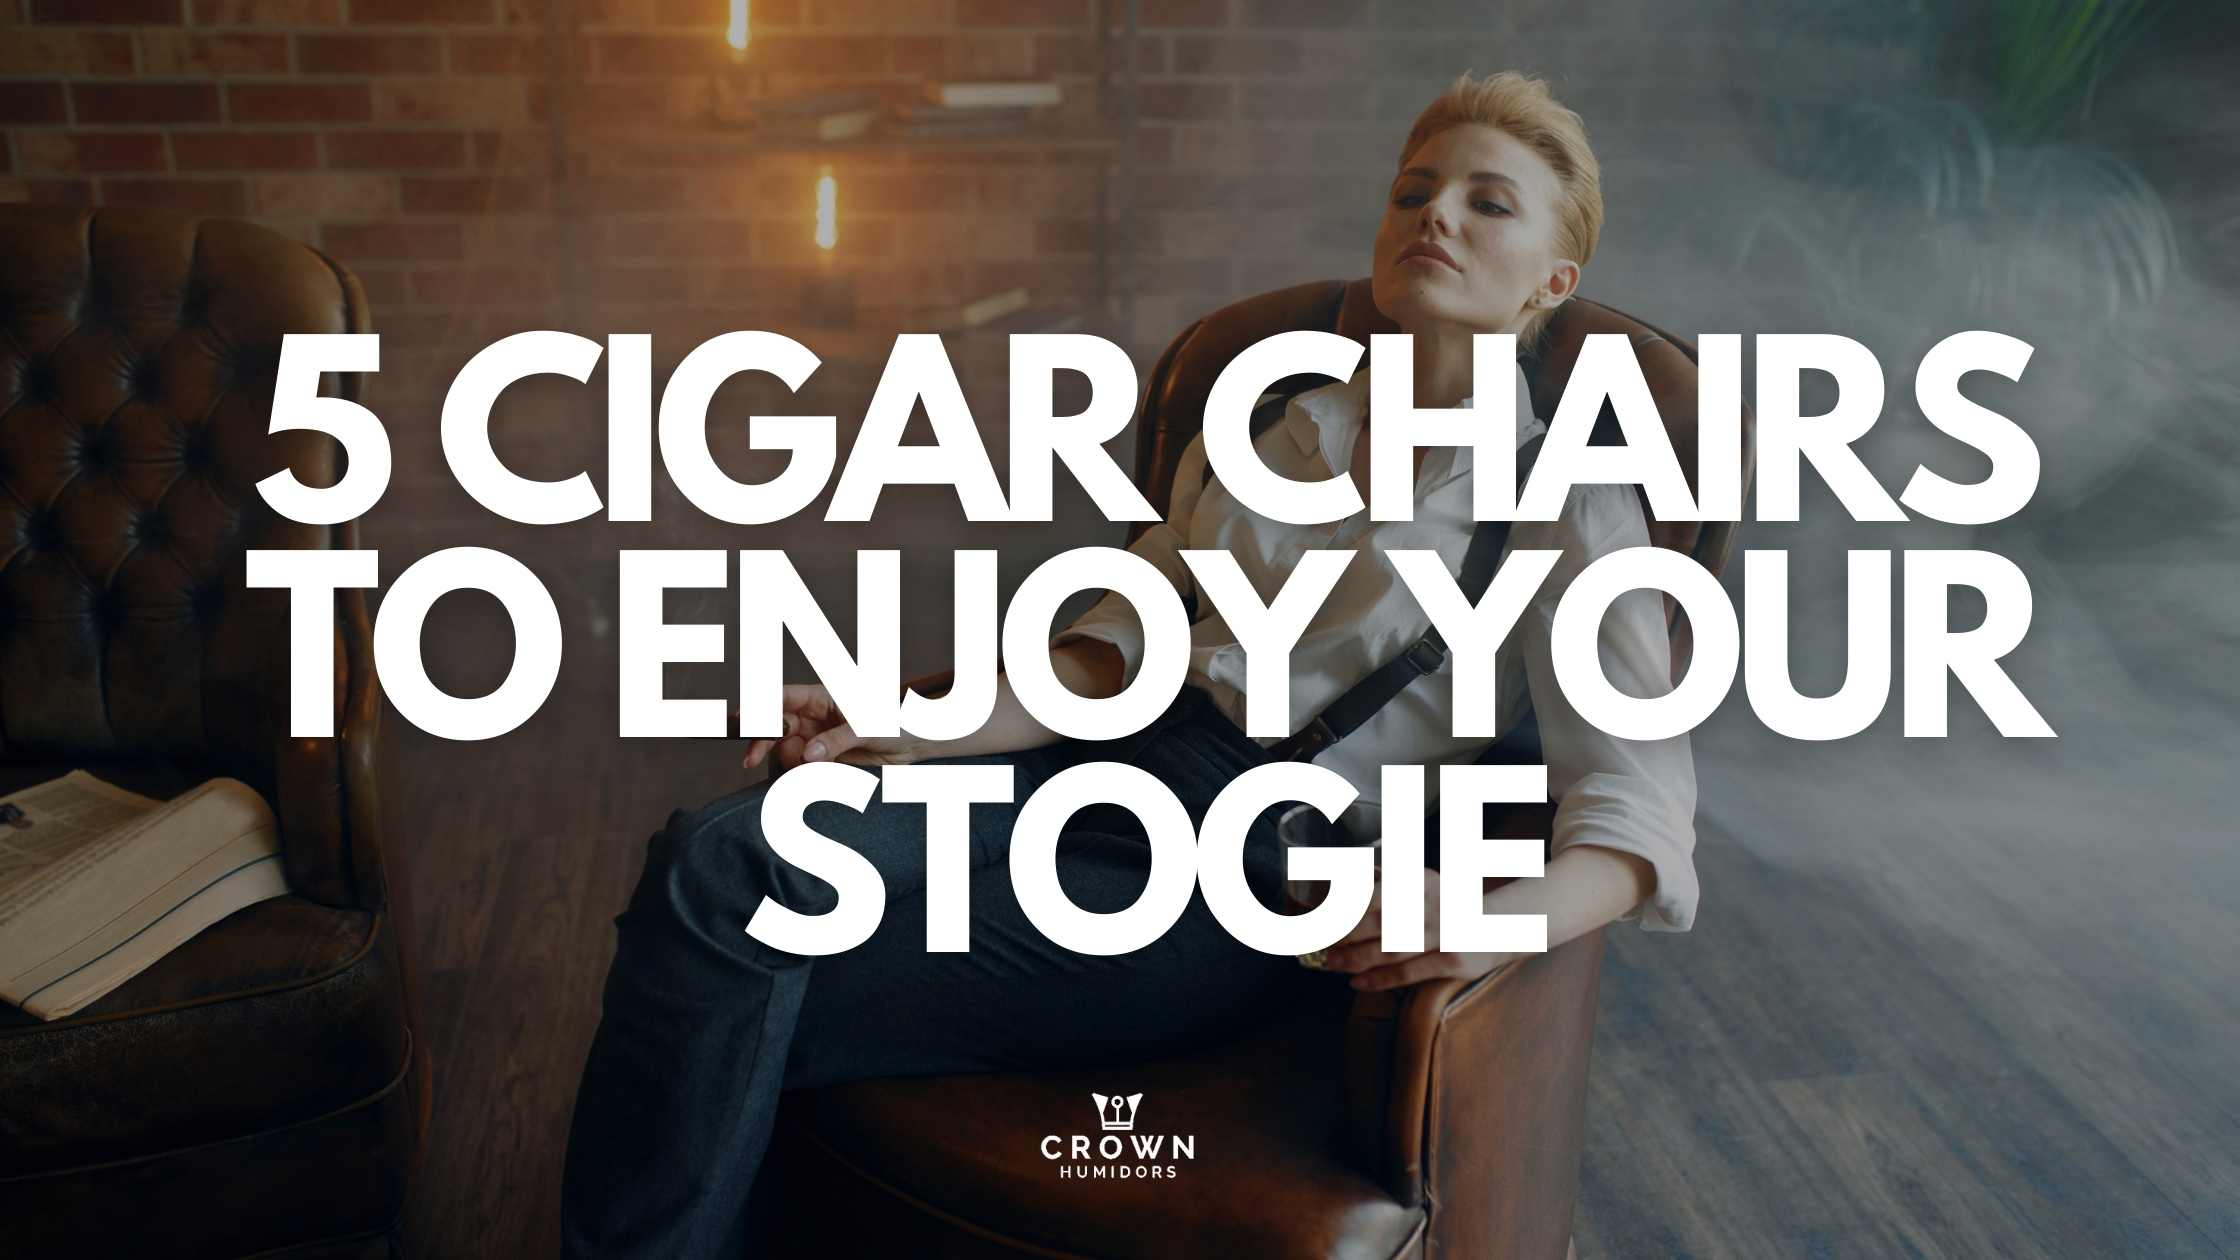 5 cigar chairs to enjoy your stogie